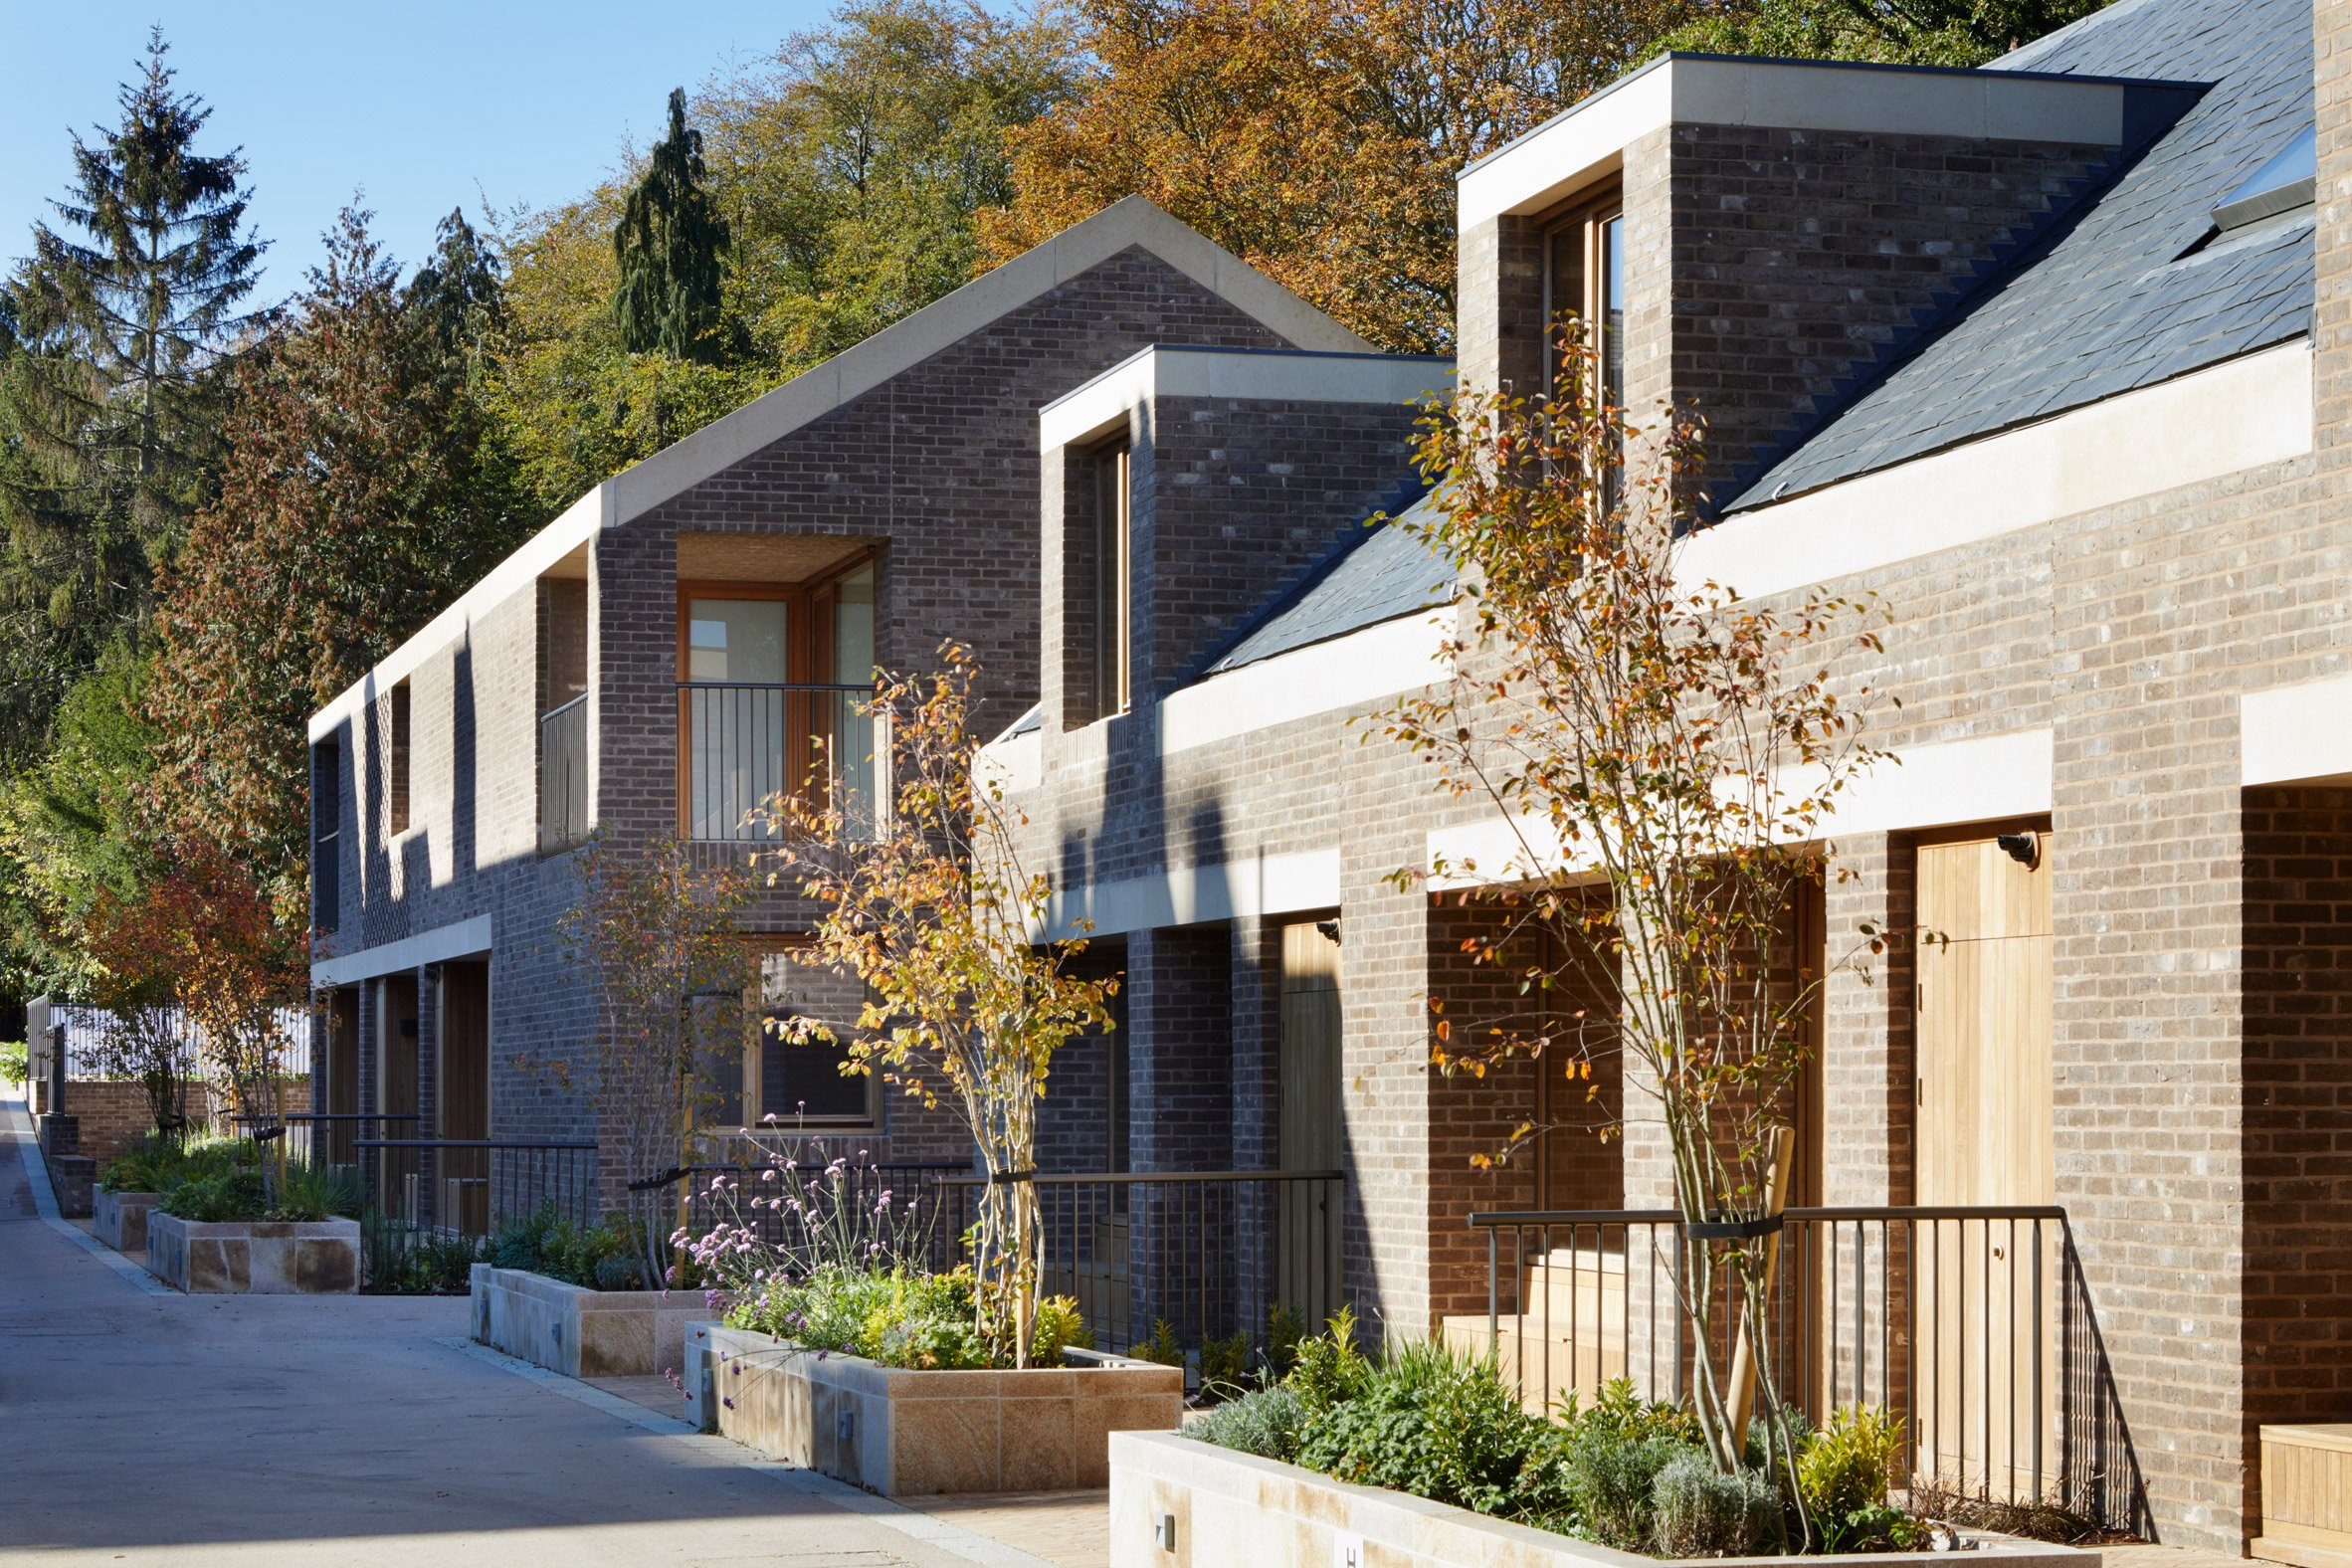 Wildernesse Mews by Morris+Company